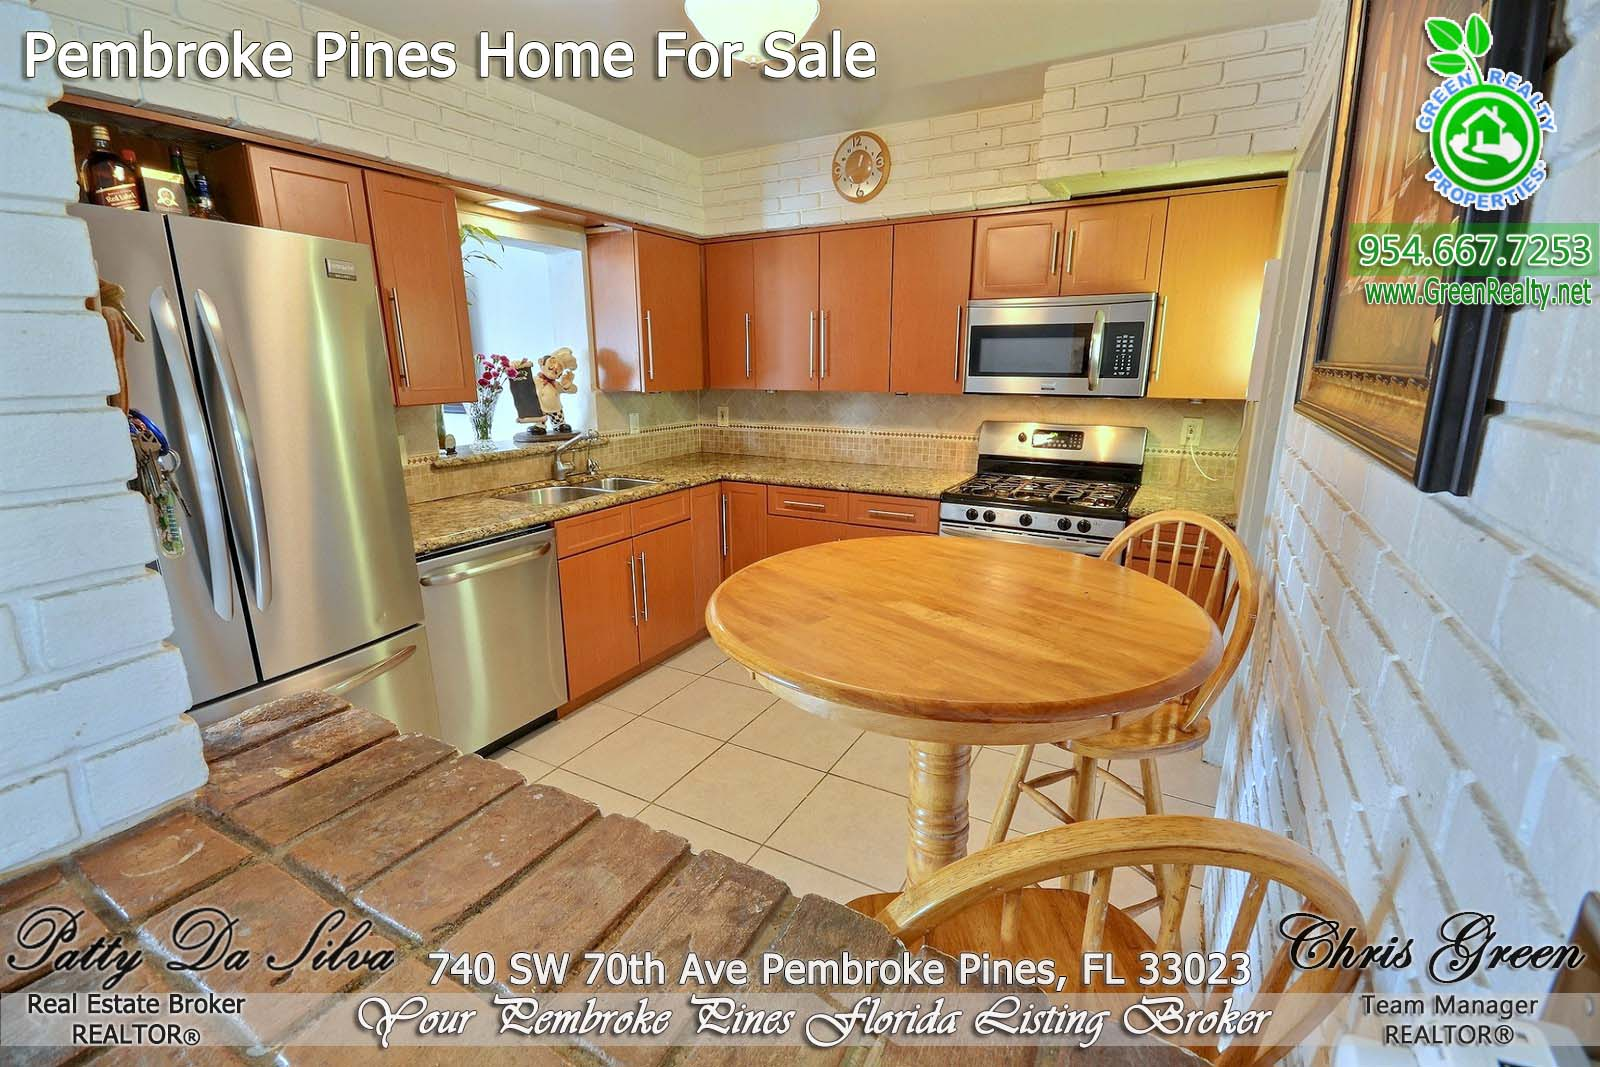 10 Patty Da Silva SELLS Pembroke Pines Homes (2)